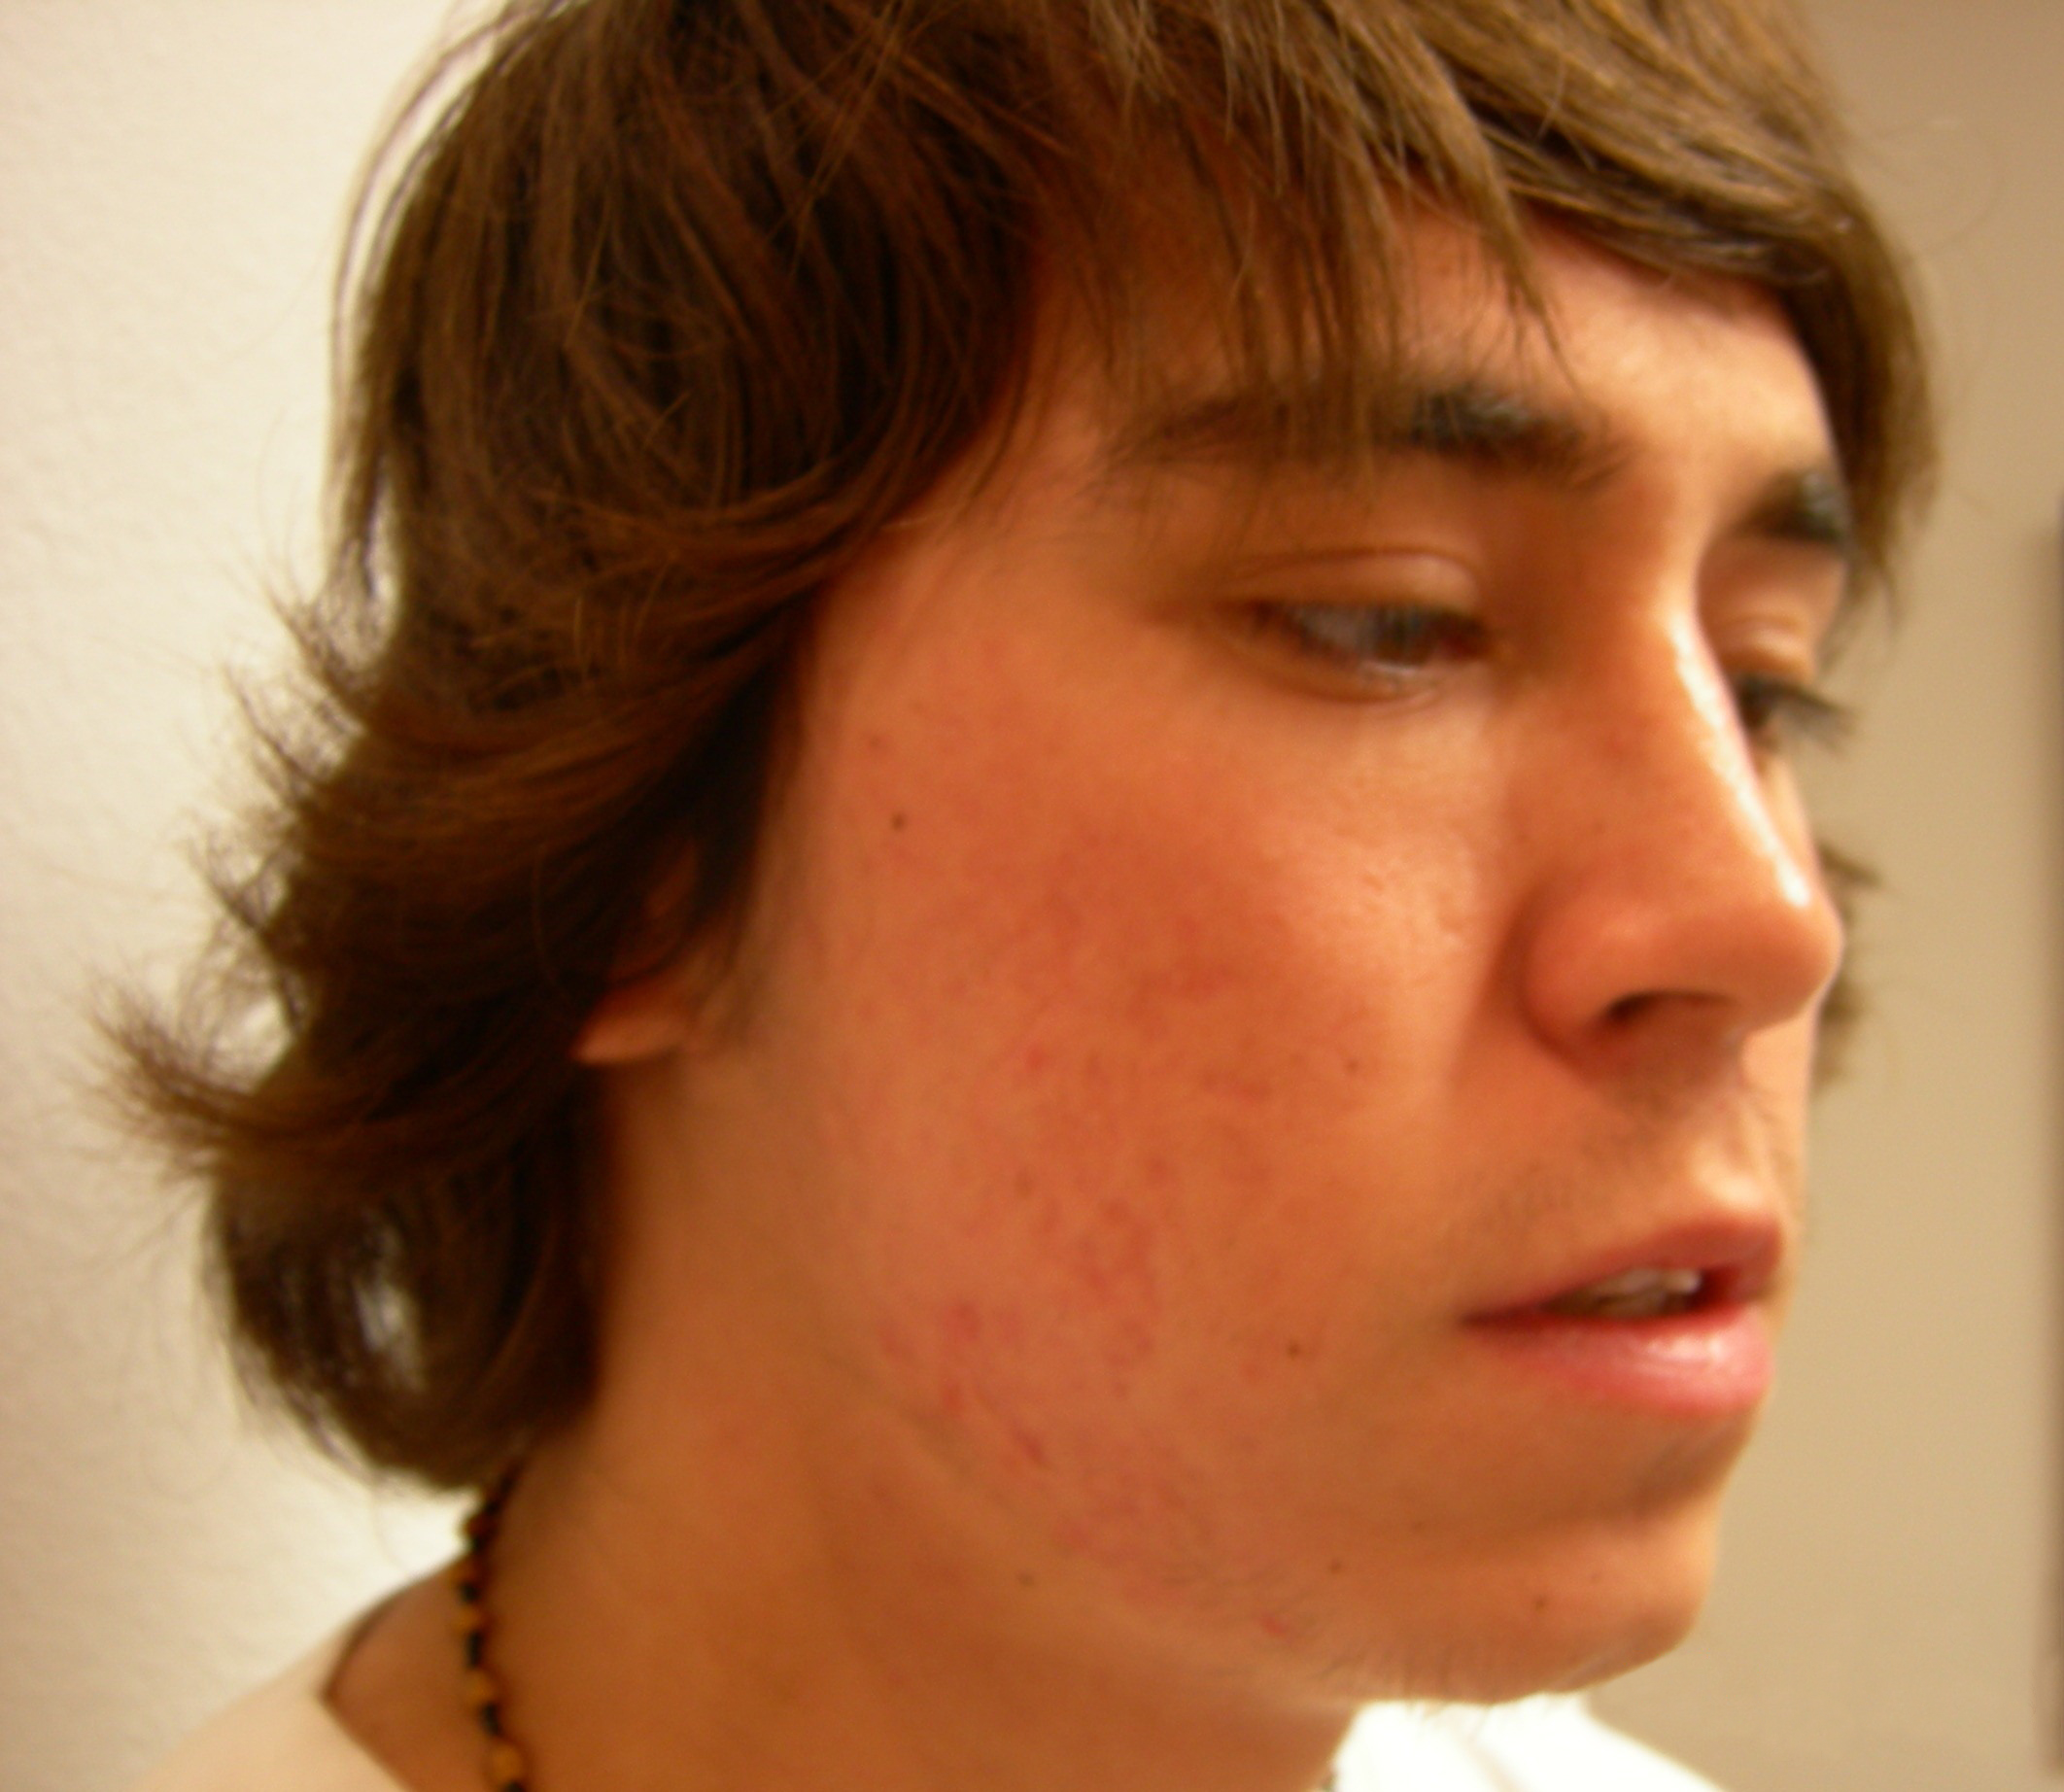 After-Acne Scars and Scar Treatment